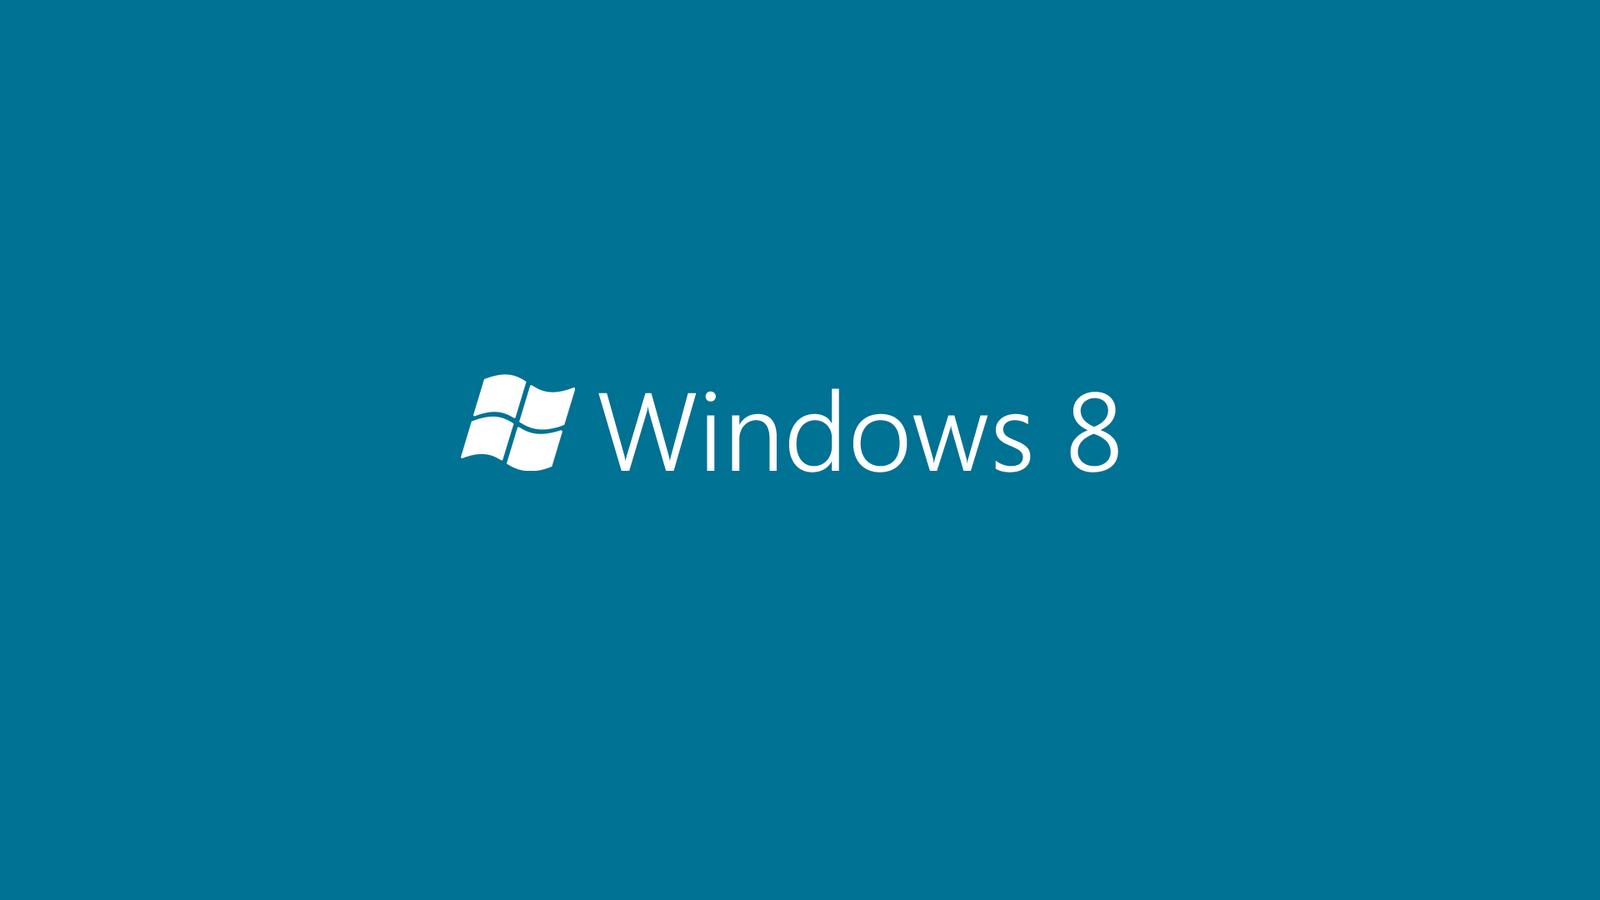 Wallpaper Of Windows 8 Download  Free Download Wallpaper